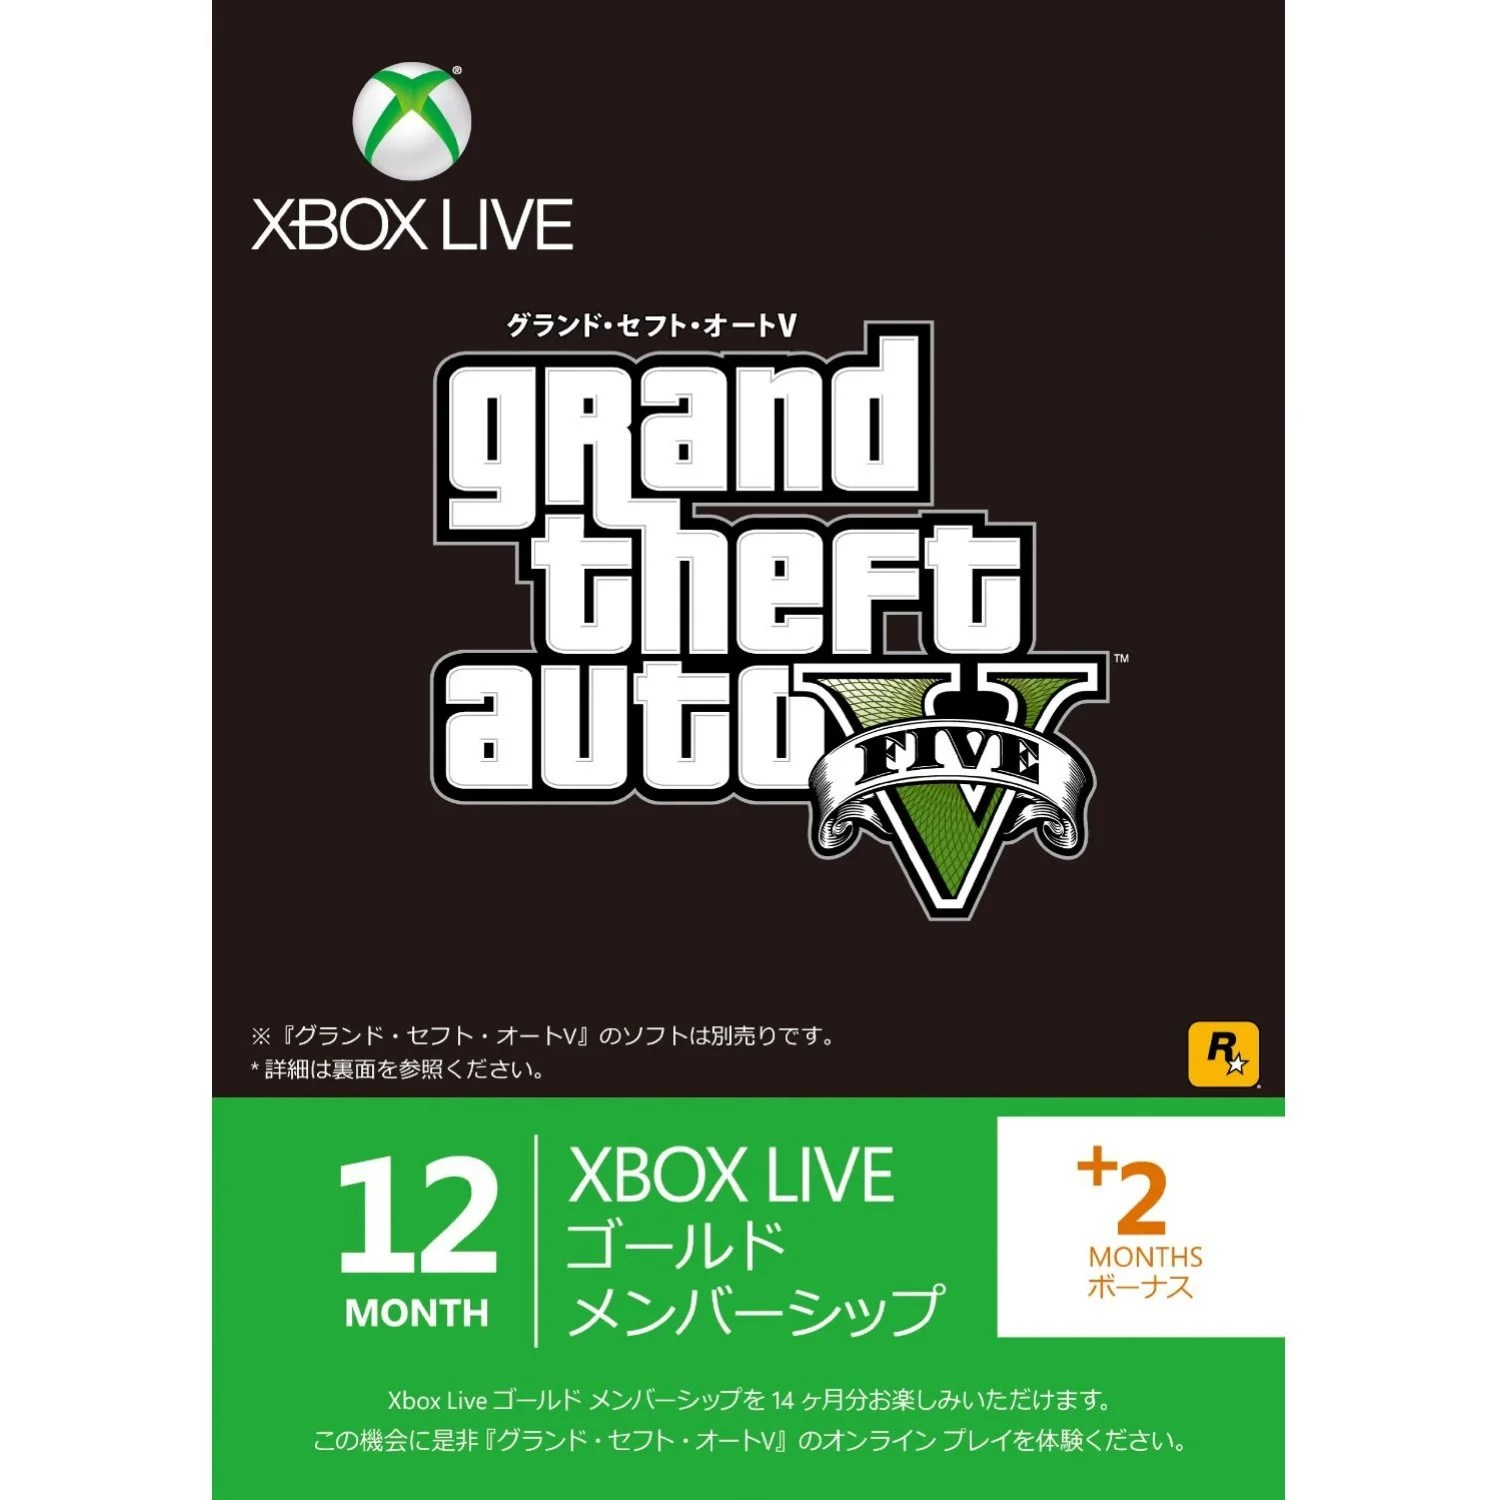 Xbox Live 12 Month 2 Gold Membership Card Grand Theft